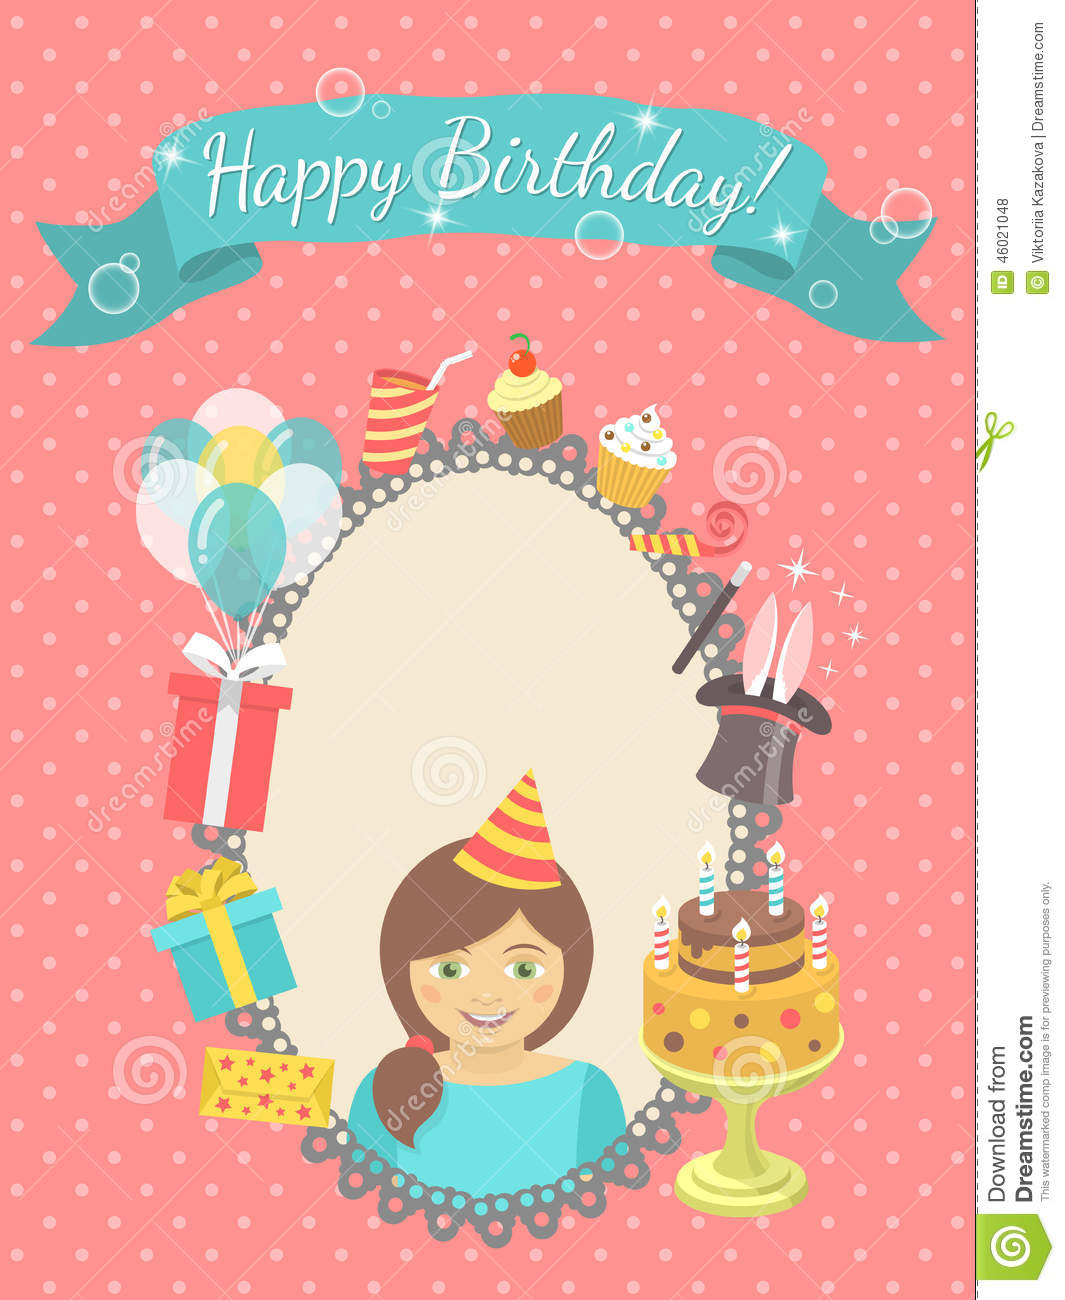 Happy Birthday Card For Girl Stock Vector Illustration Of Colorful